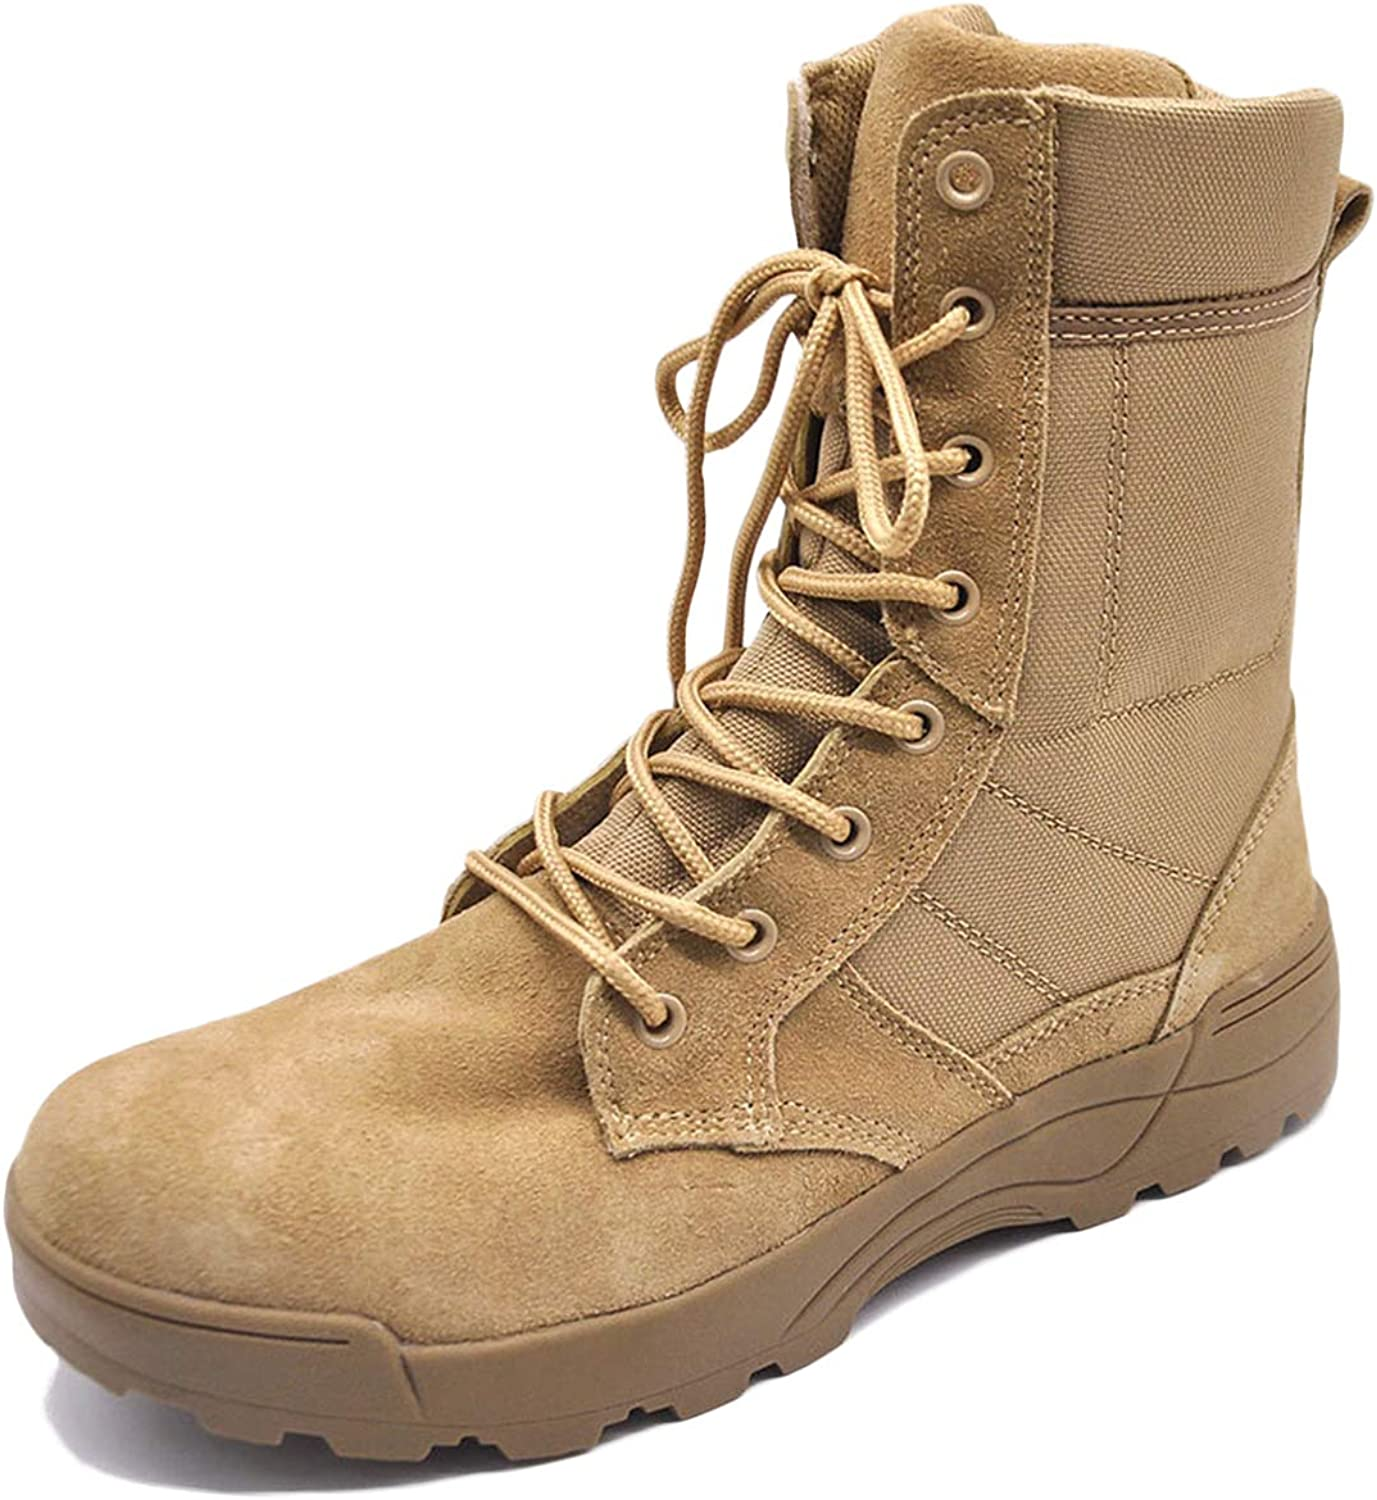 HNGLXQ Combat Boots G-82 Leather Side Zip Army Tactical Boots Delta Military Work Army shoes Safety Ankle Boots Breathable Commando Outdoor Desert Tactical Military Patrol Boots,Beige-EU43